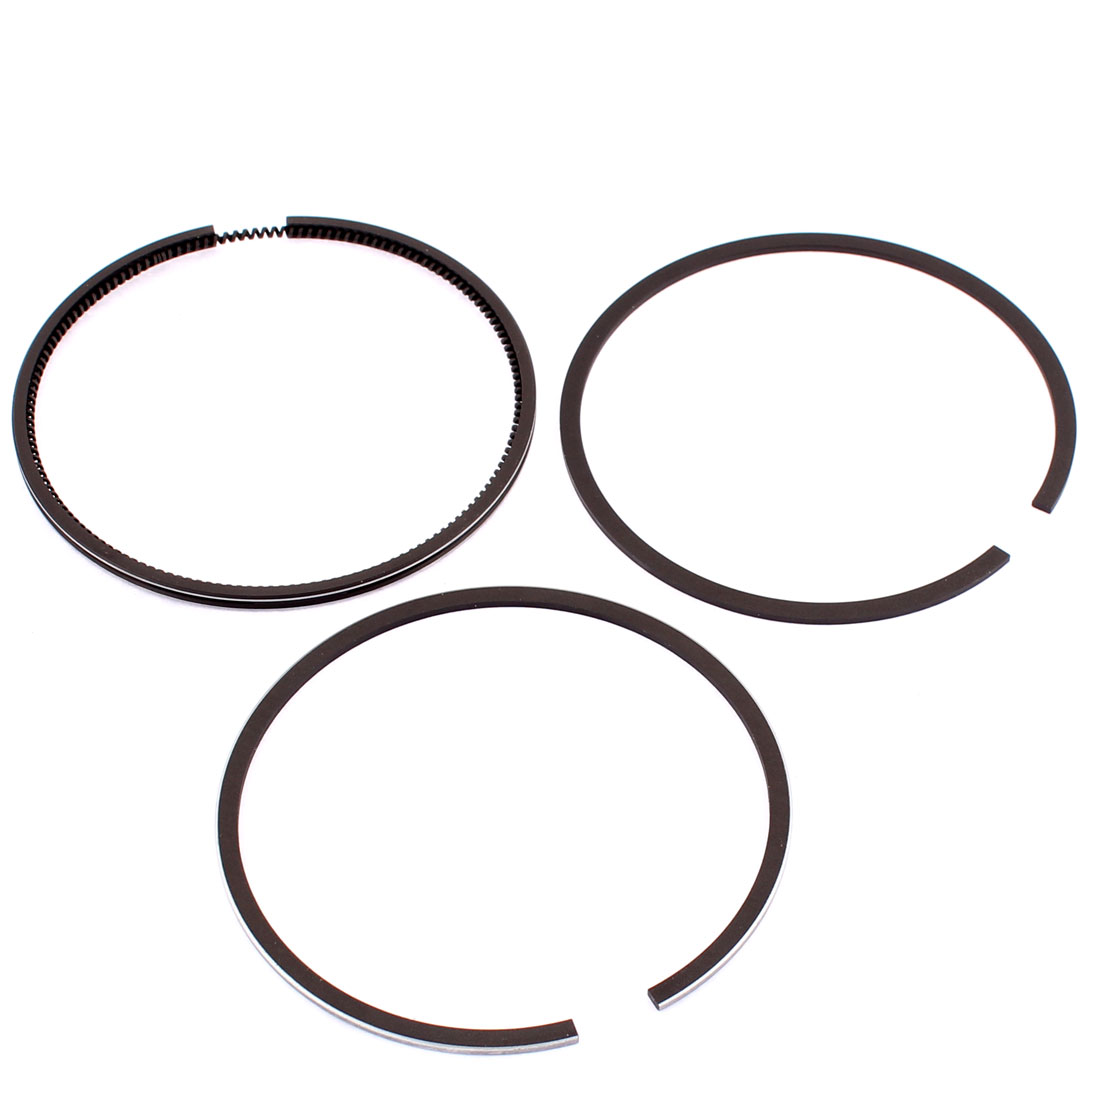 Piston Ring Set for 178 178F Yanmar L70 DET 78mm Bore Engine